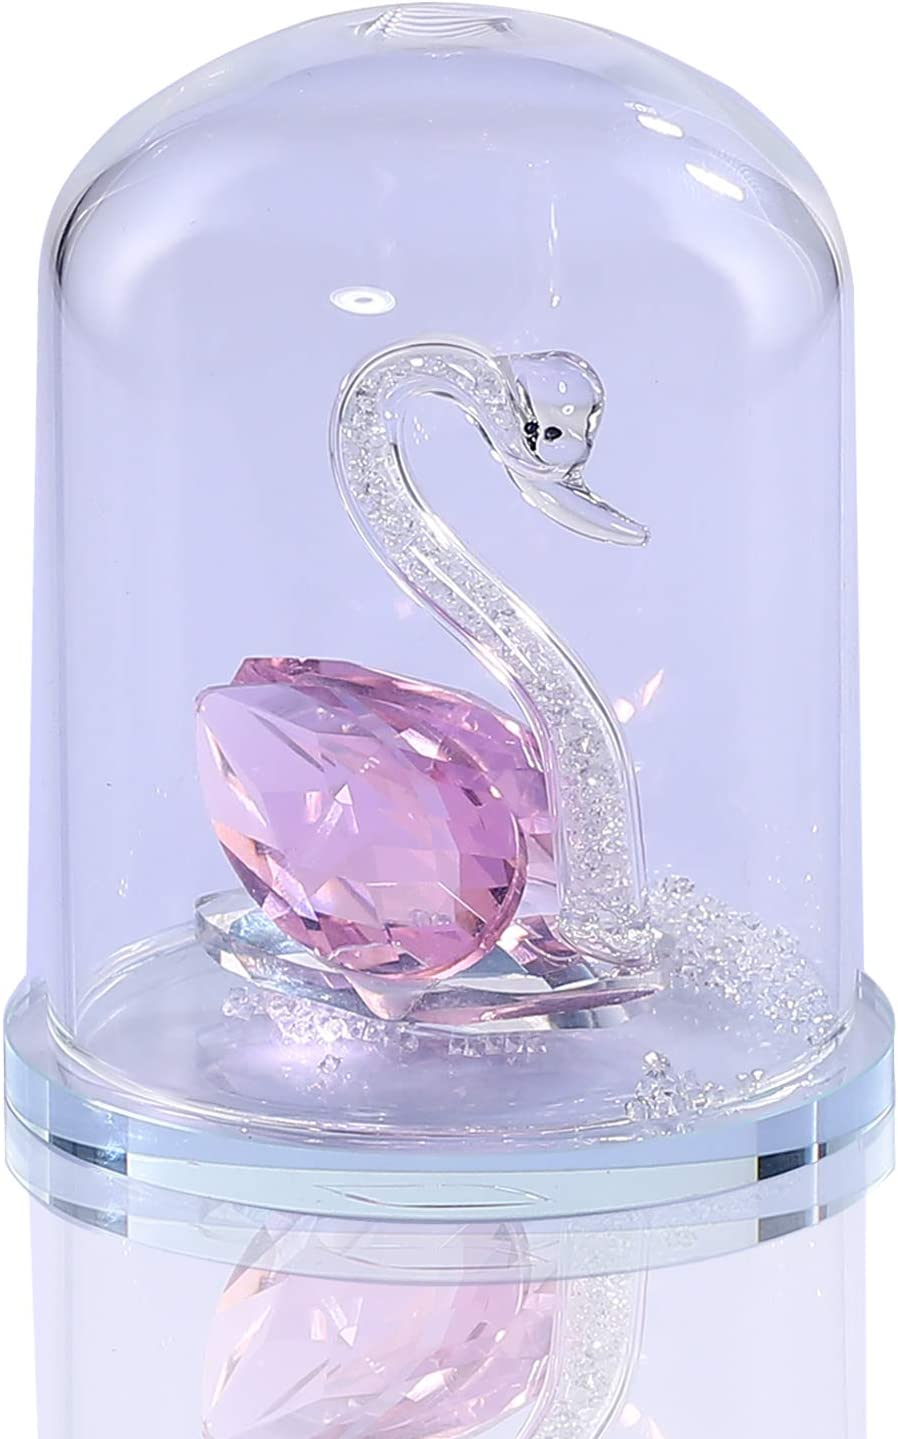 PJCSEC Pink Crystal Swan Figurine Collection Statue with Glass Cover Home Office Decor Cute Table Centerpiece Glass Ornament Crystal Gift